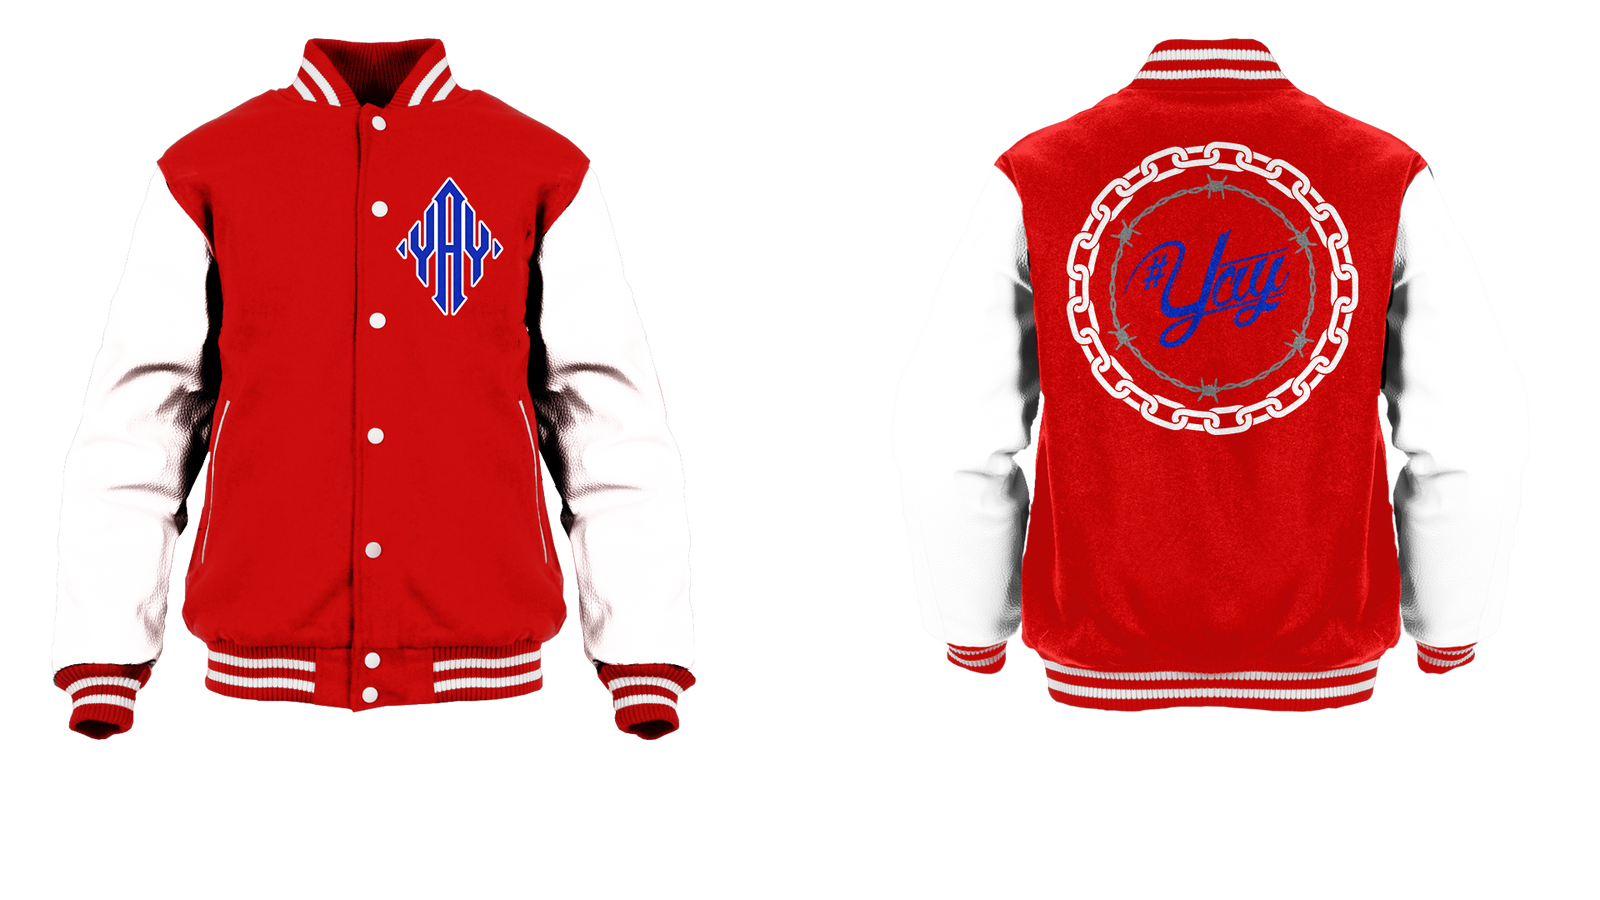 Chained and Barbed Yay Diamond Logo Varsity Jacket